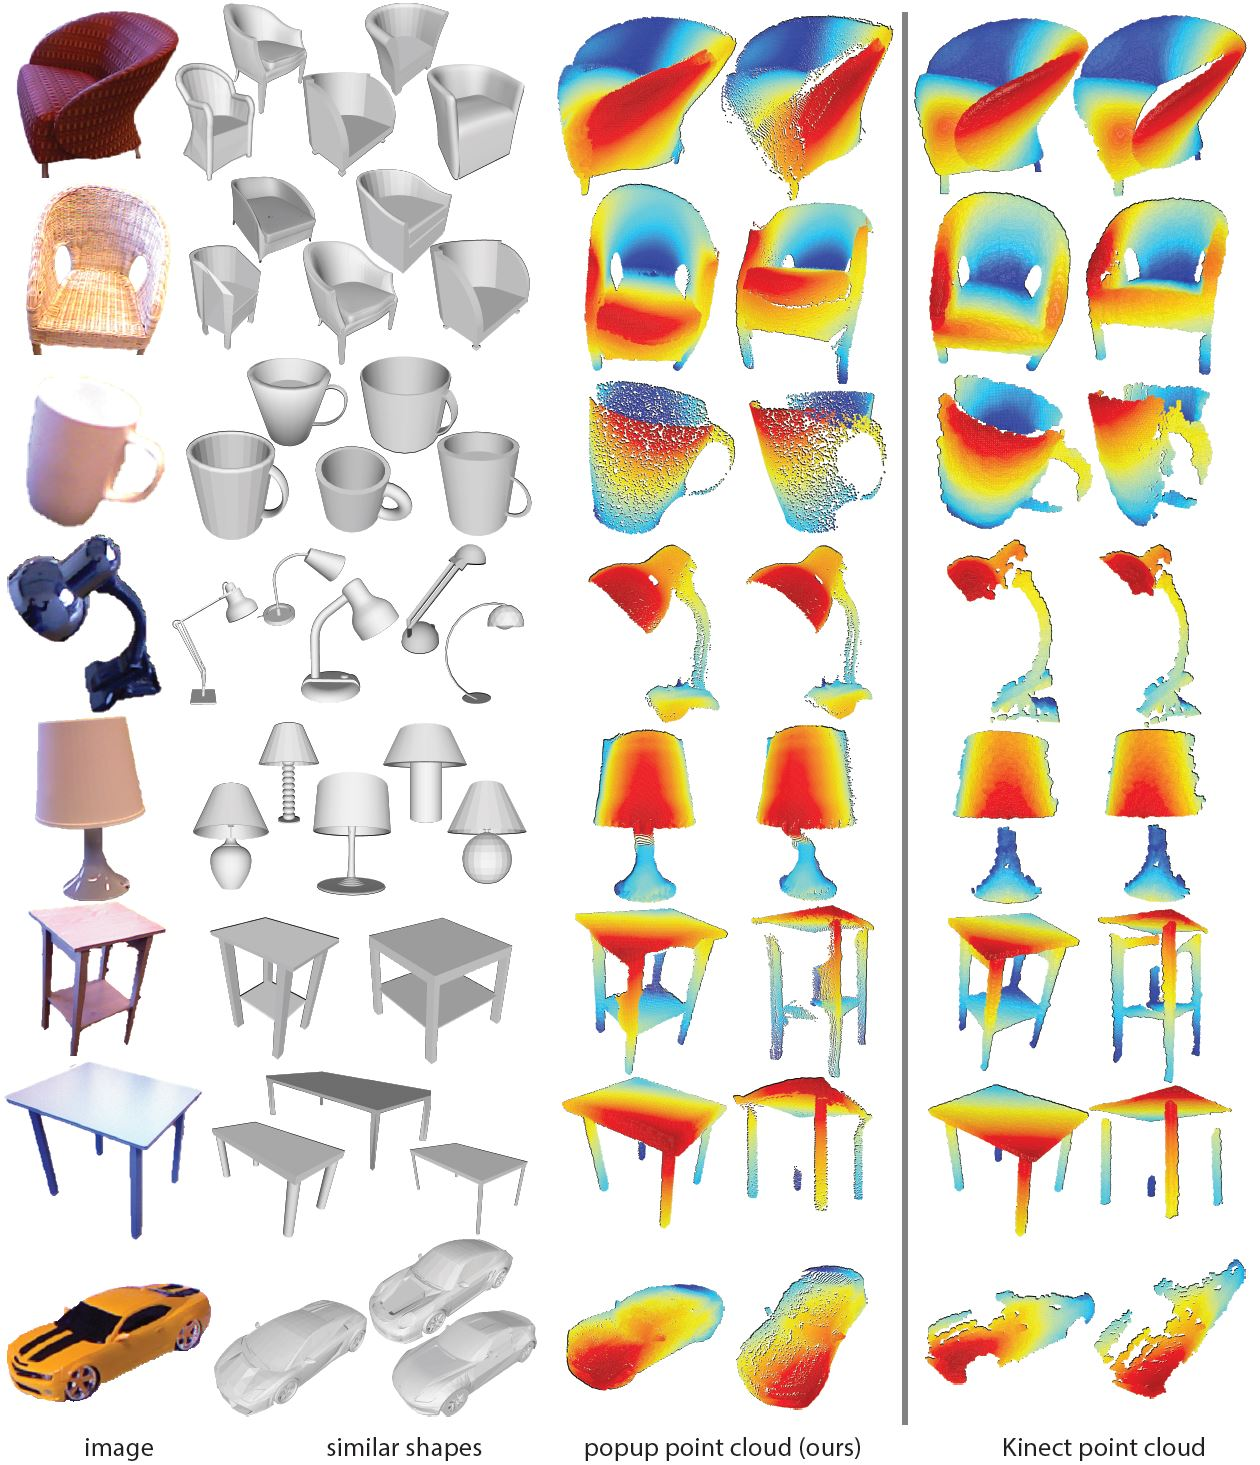 Estimating Image Depth Using Shape Collections